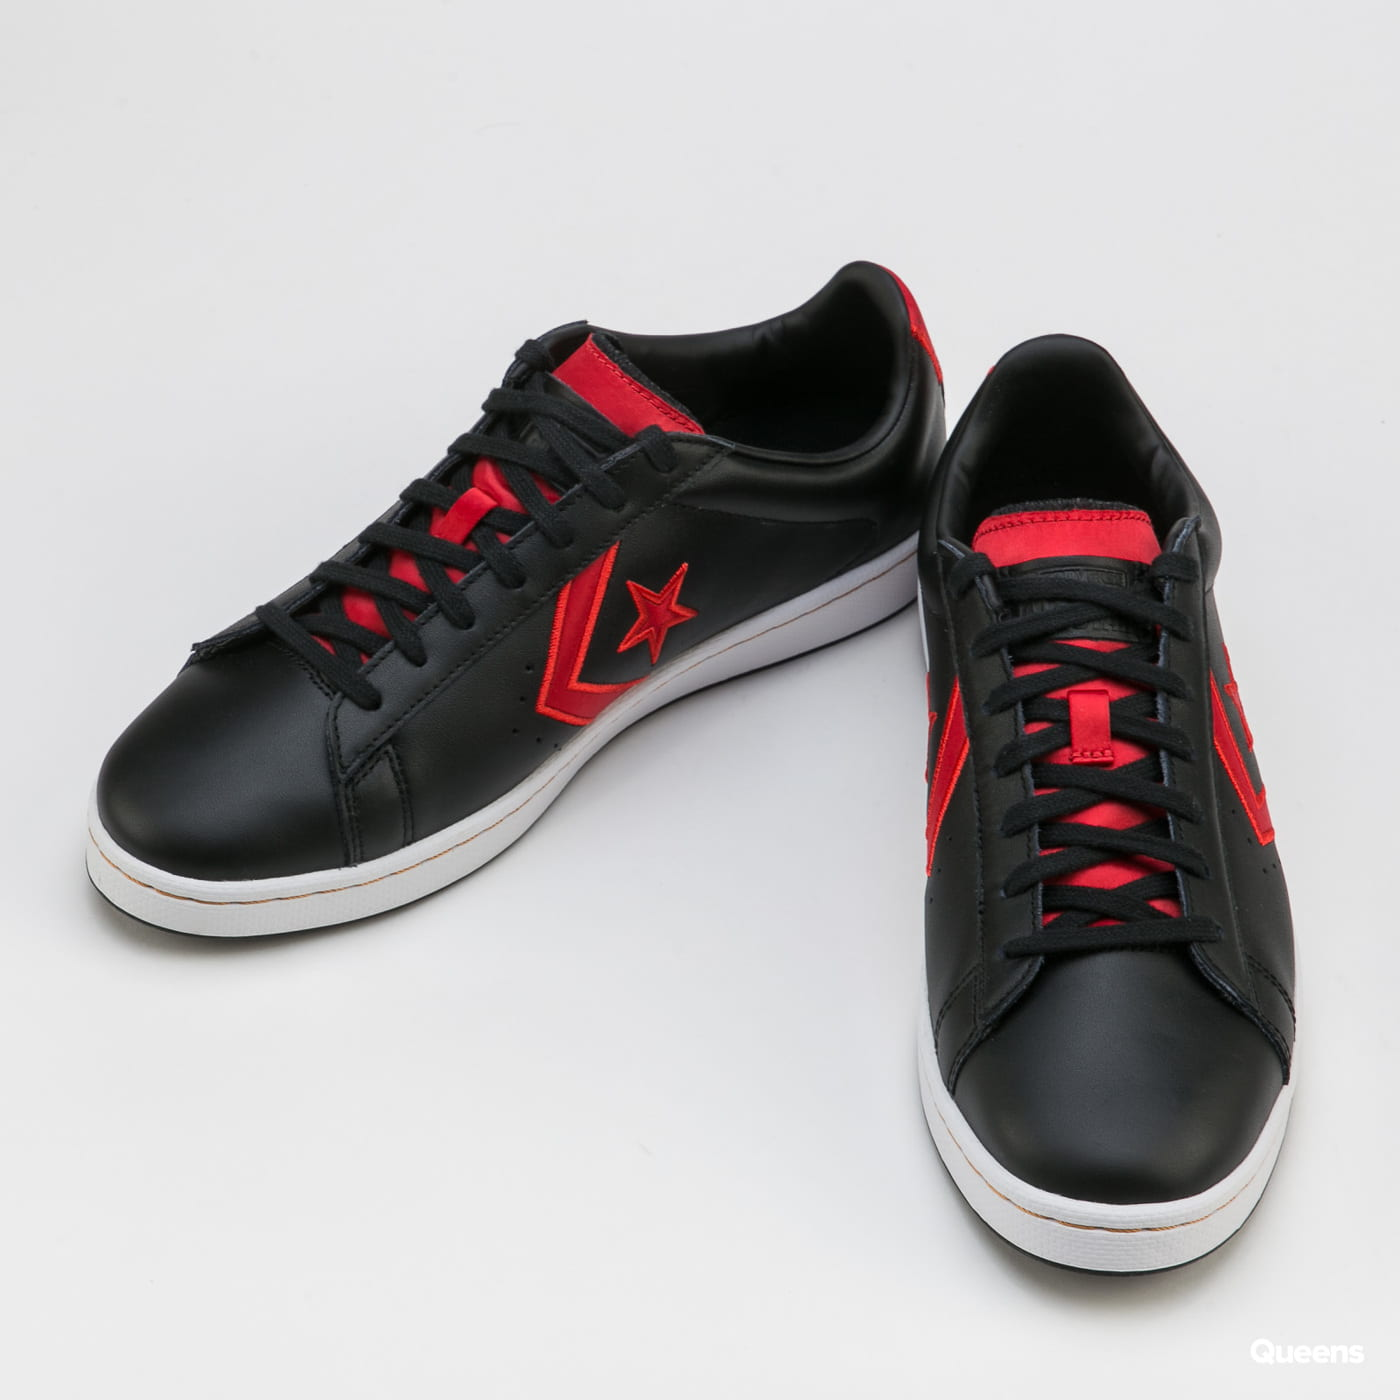 Converse Pro Leather Gold Standard OX black / university red / white